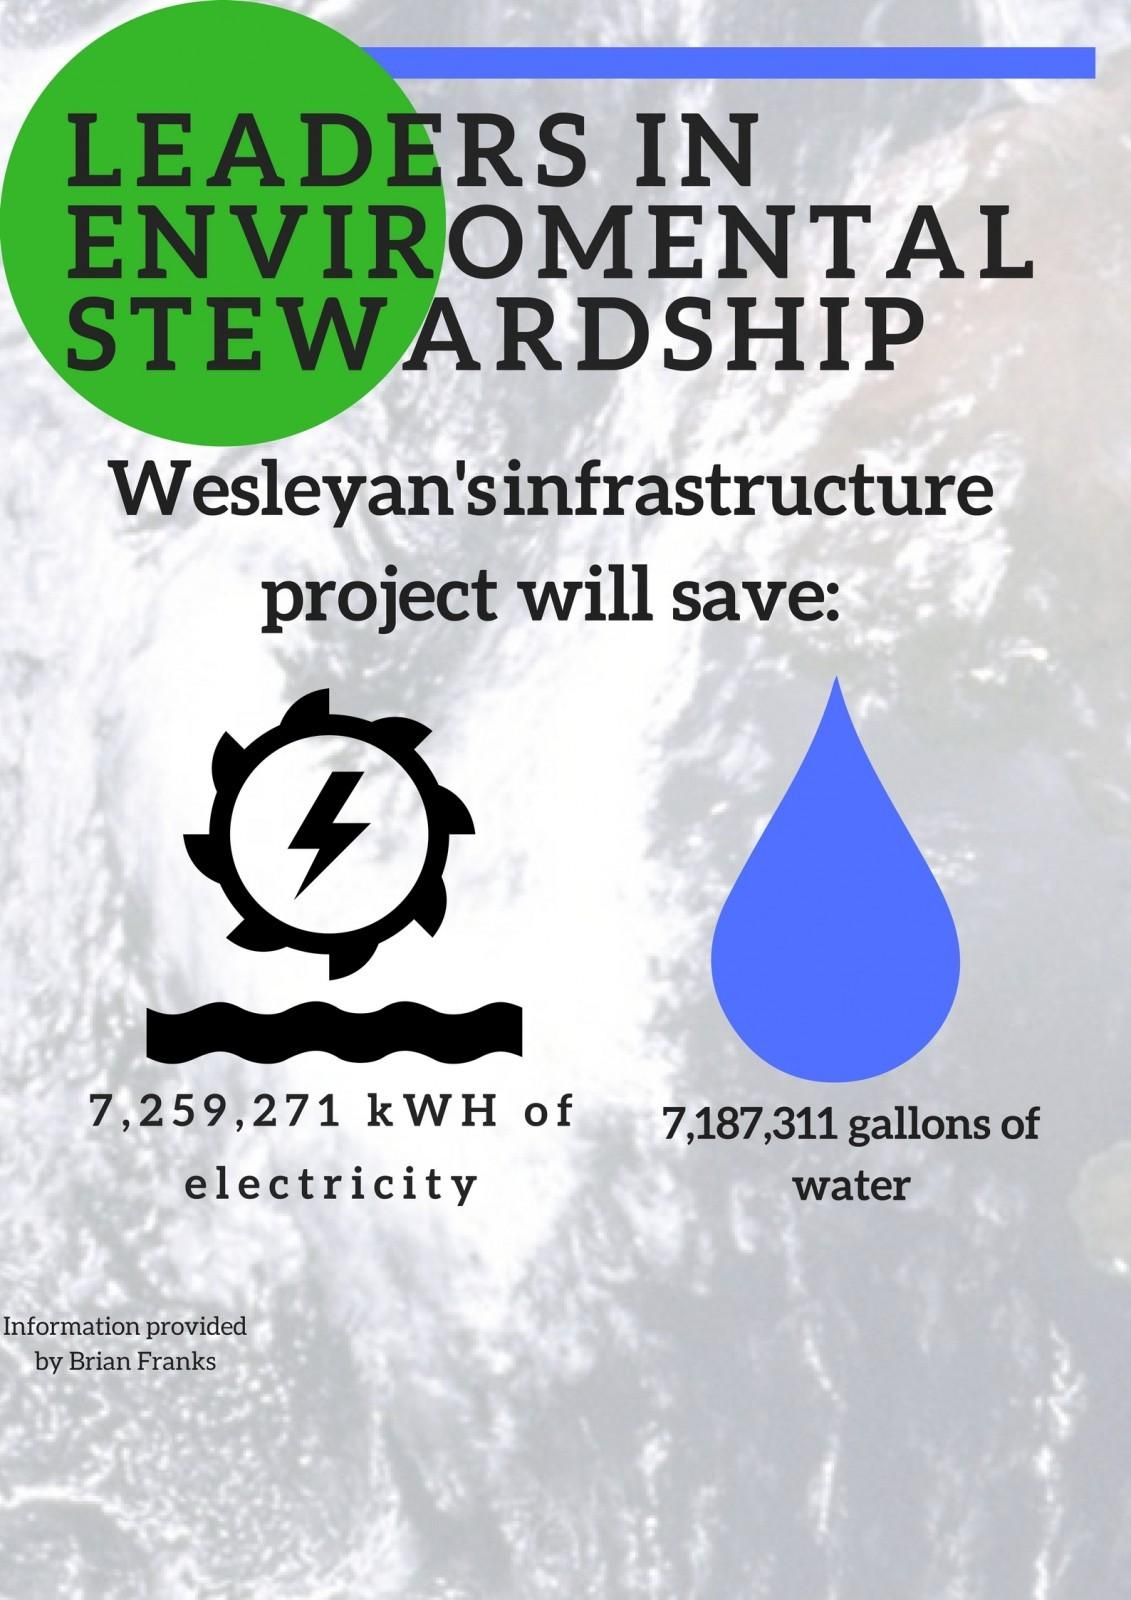 Wesleyan improves infrastructure